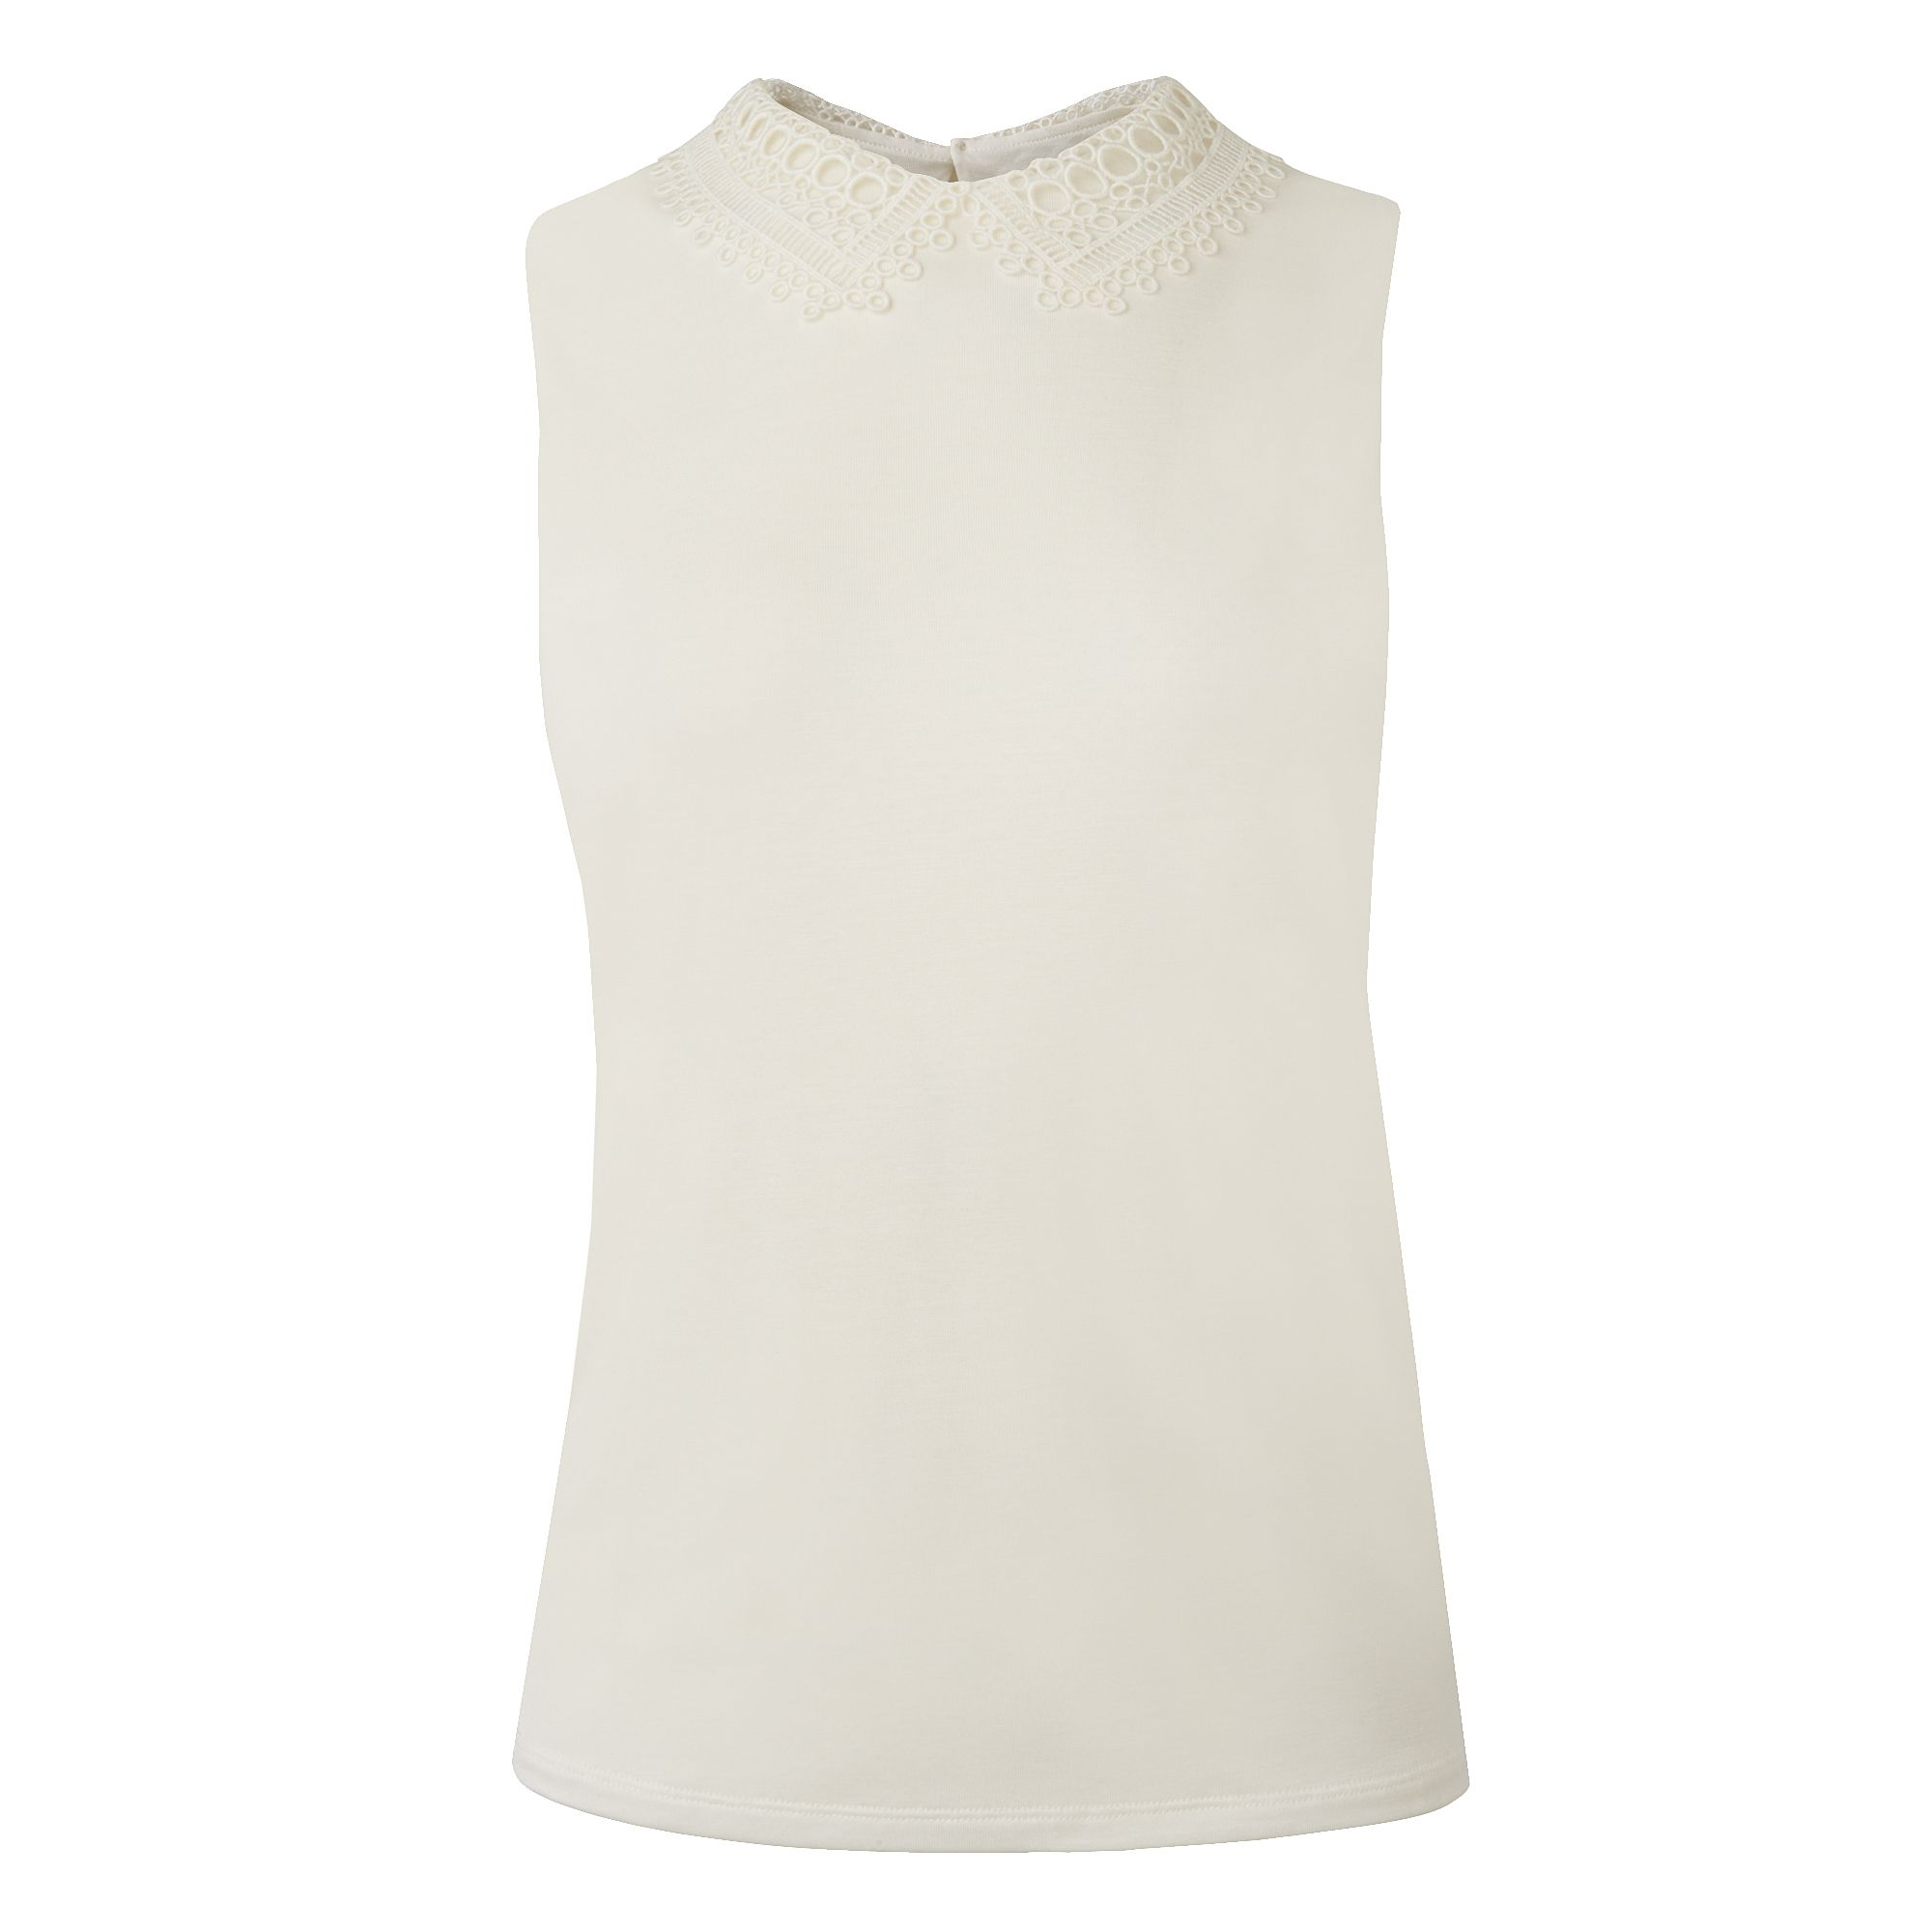 L.K. Bennett Bella Lace Collar Jersey Tops, Cream